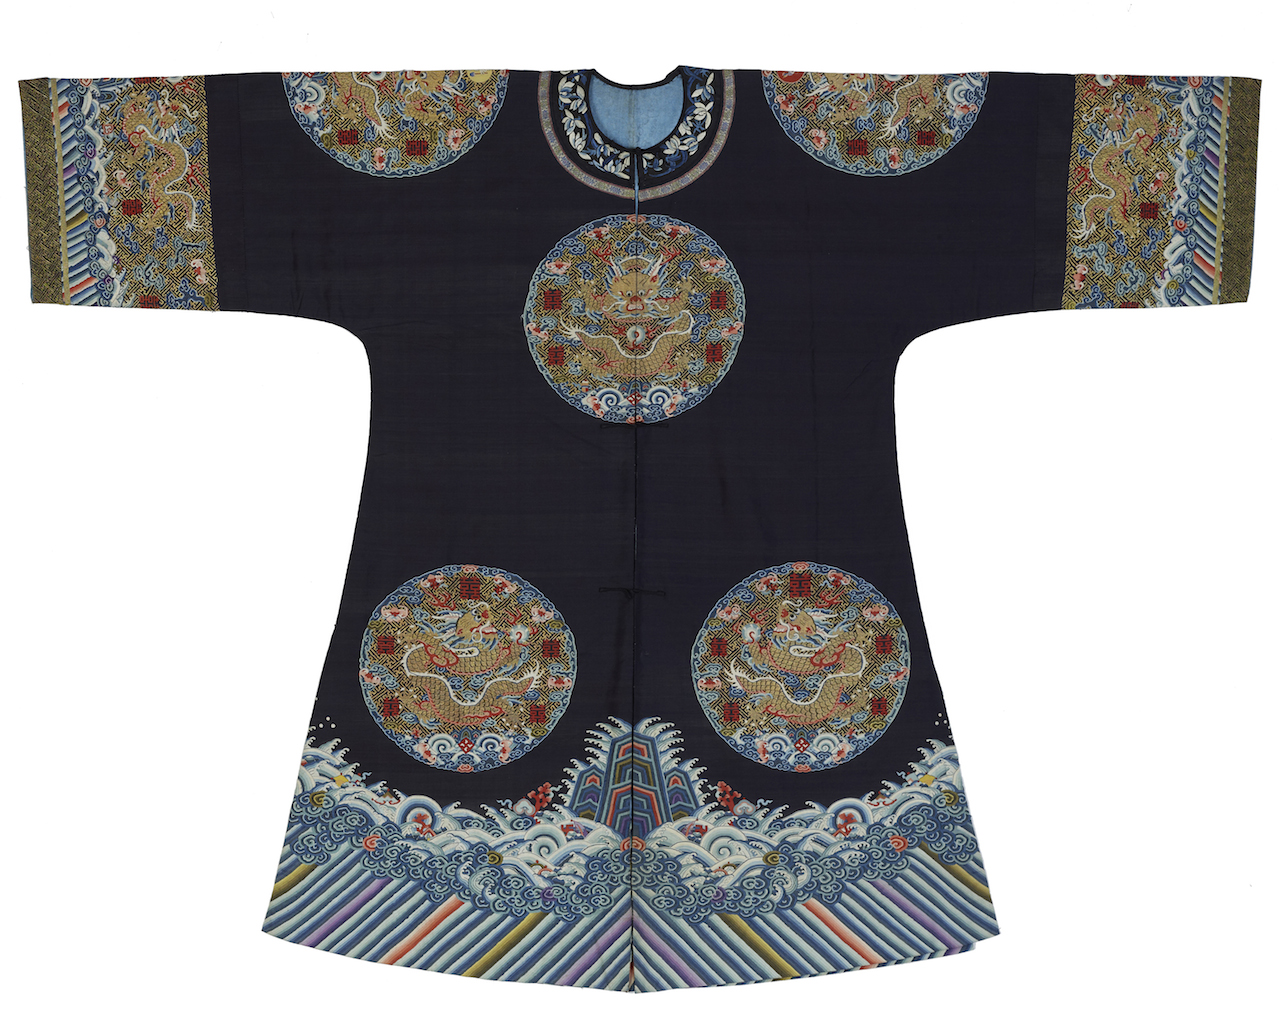 Empress Dowager's surcoat, front, China, late 19th century, 46.9 x 63.9 in. (gift of The Florence Eddowes Morris Collection, Goucher College)